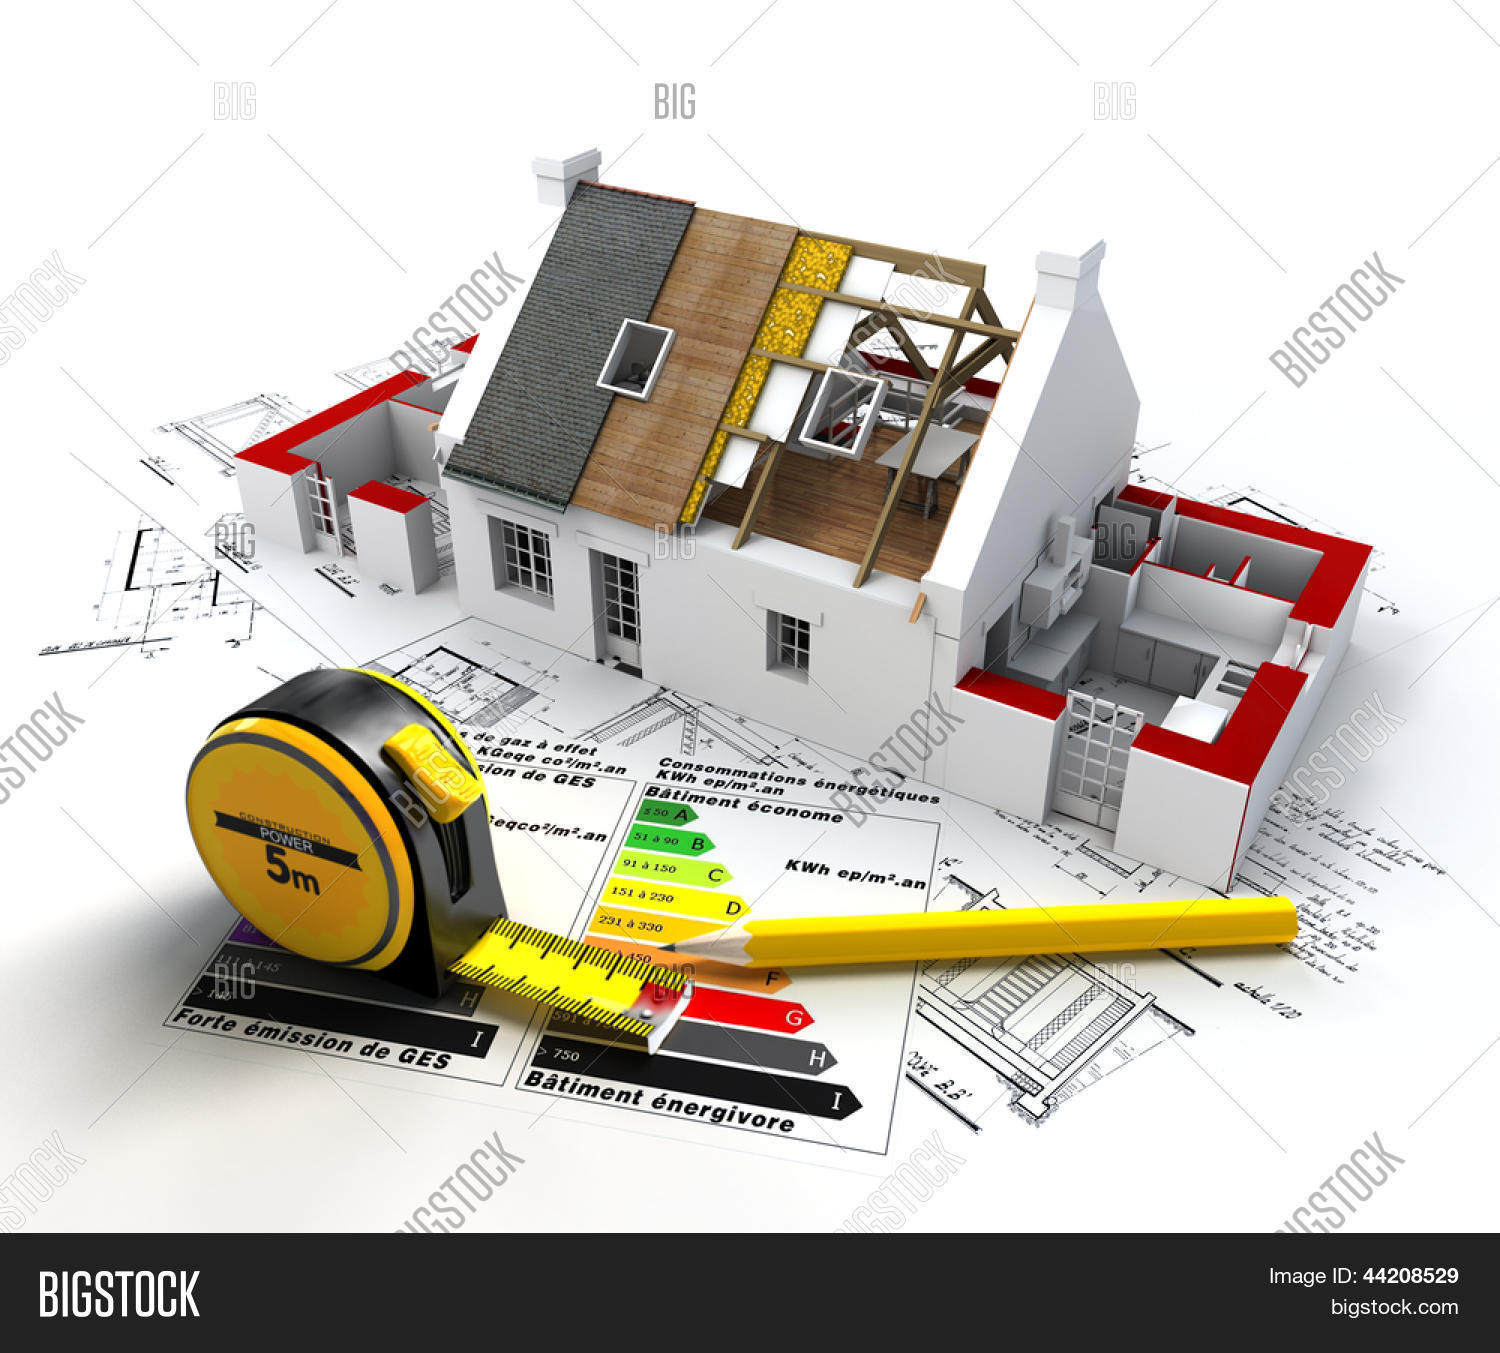 3D Rendering Of A House In Construction, On Top Of Blueprints, With And  Energy